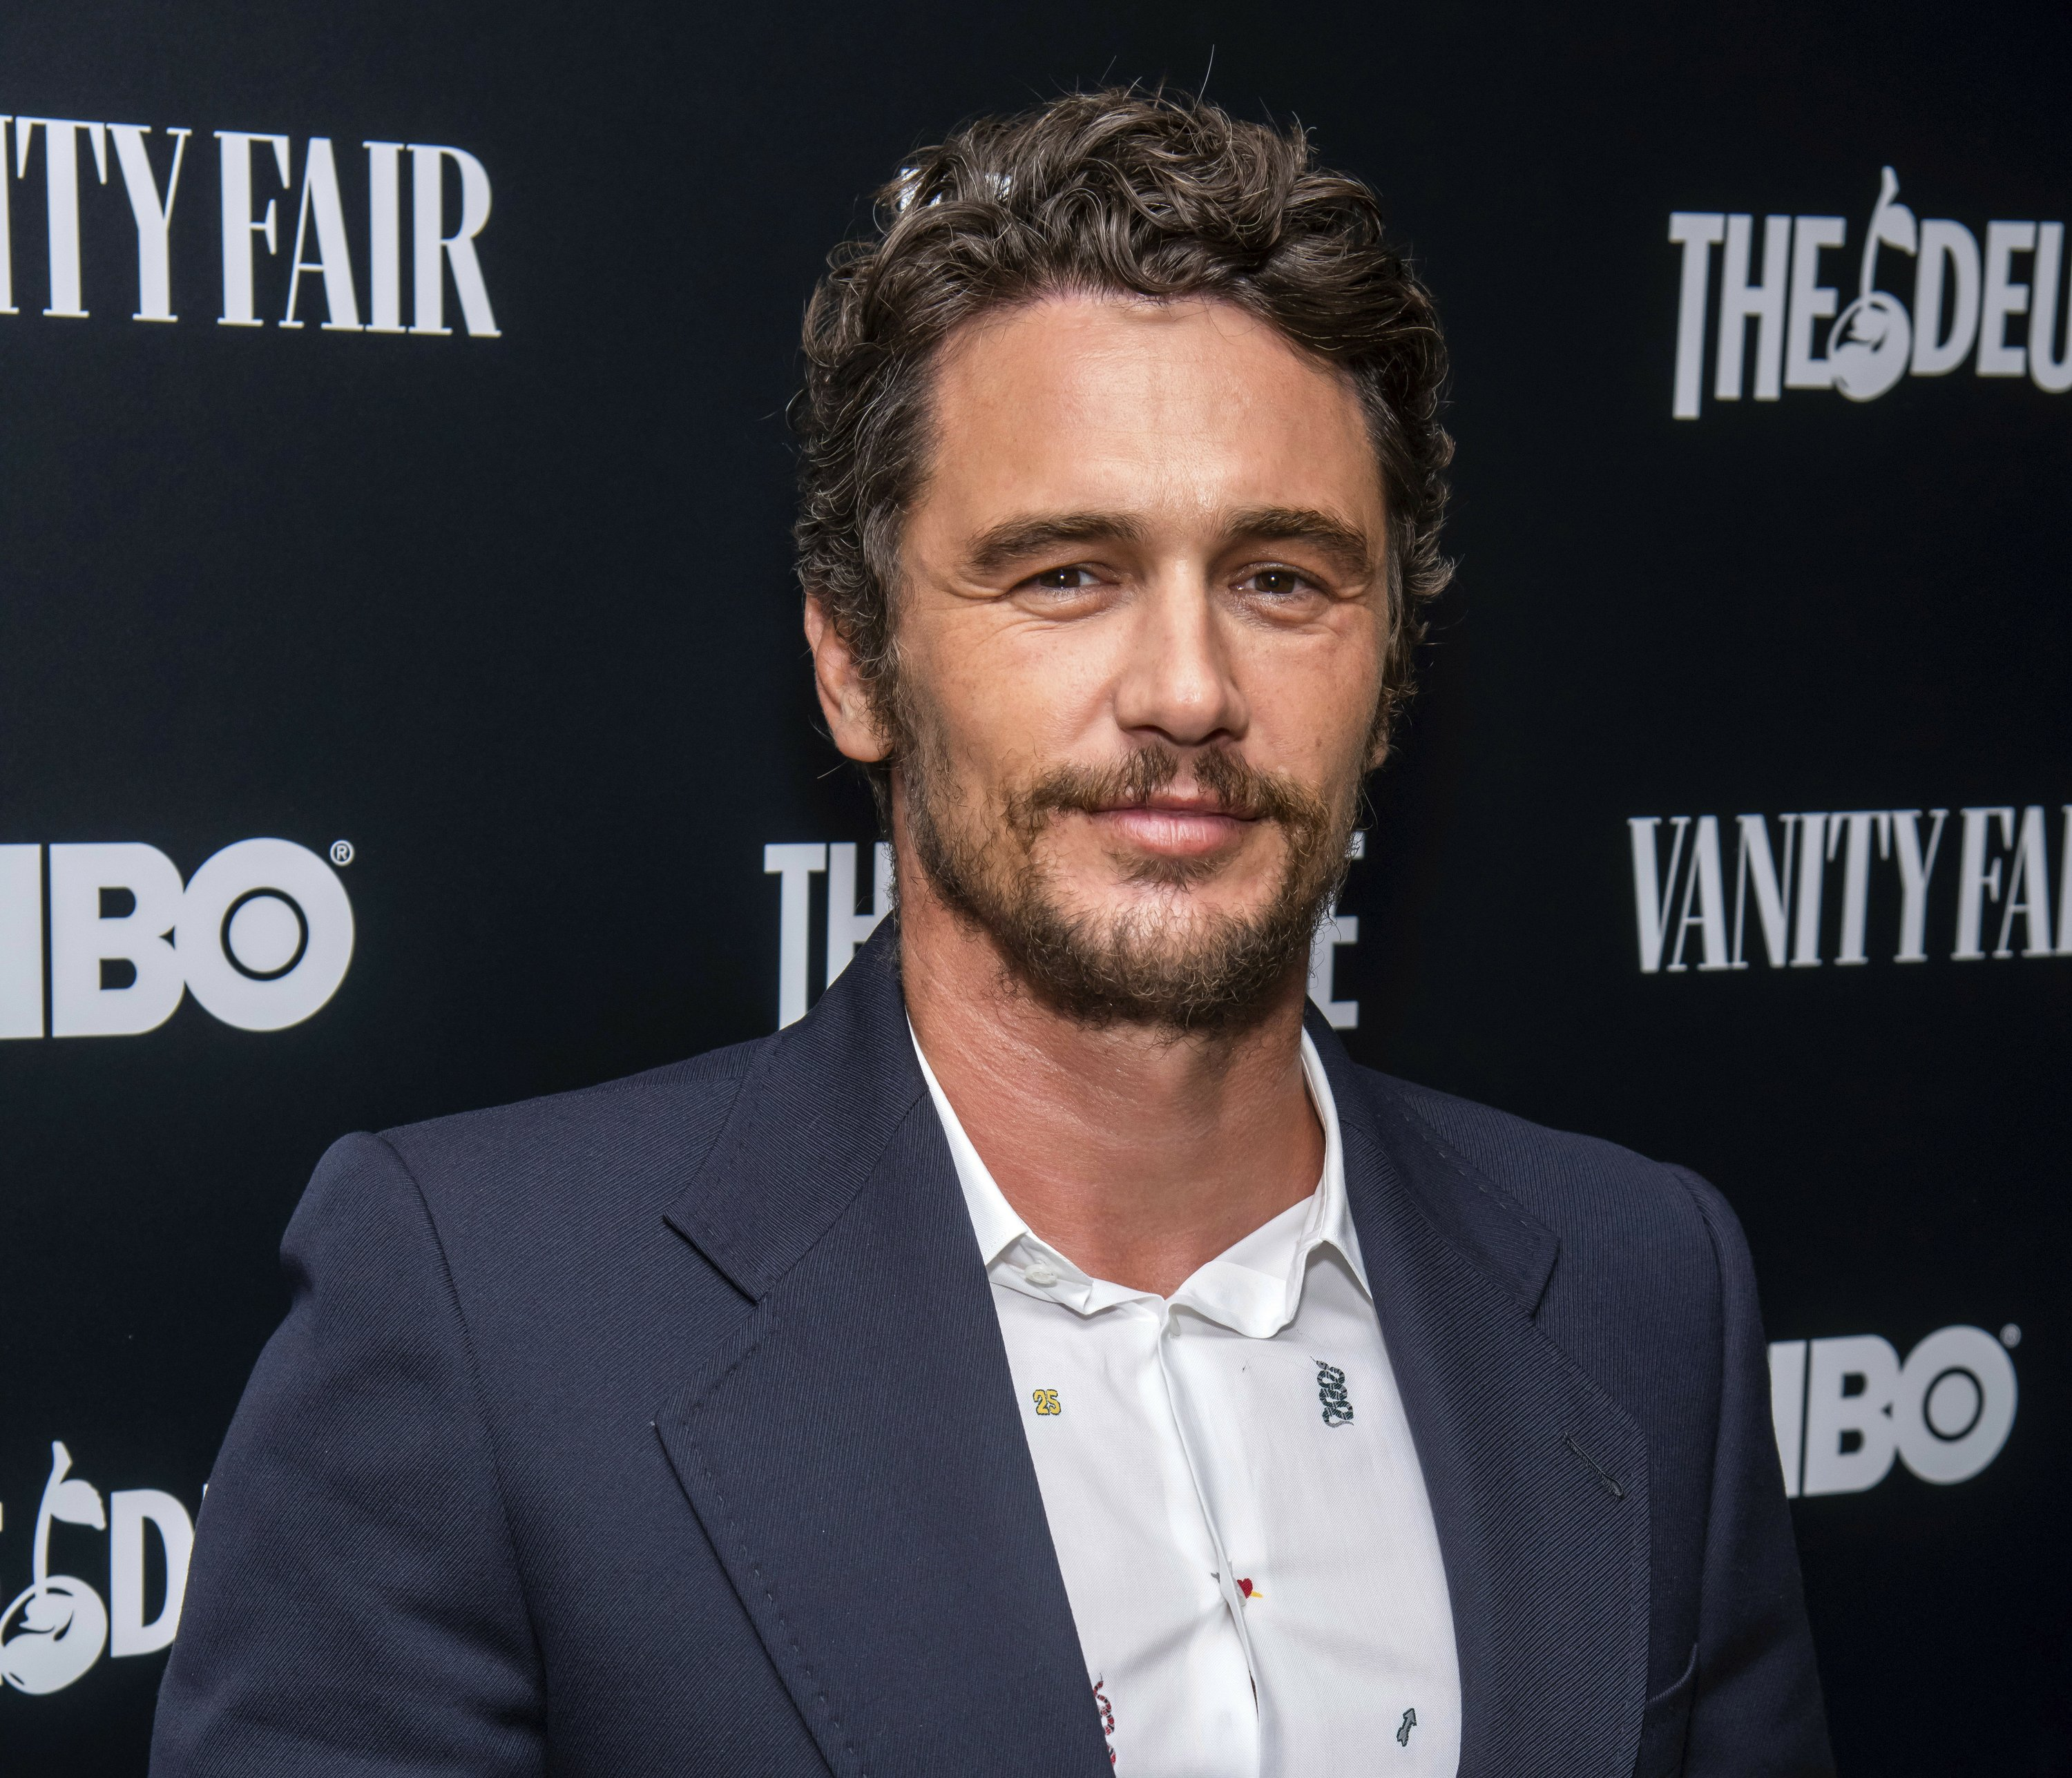 James Franco's ex-students sue alleging sexual impropriety